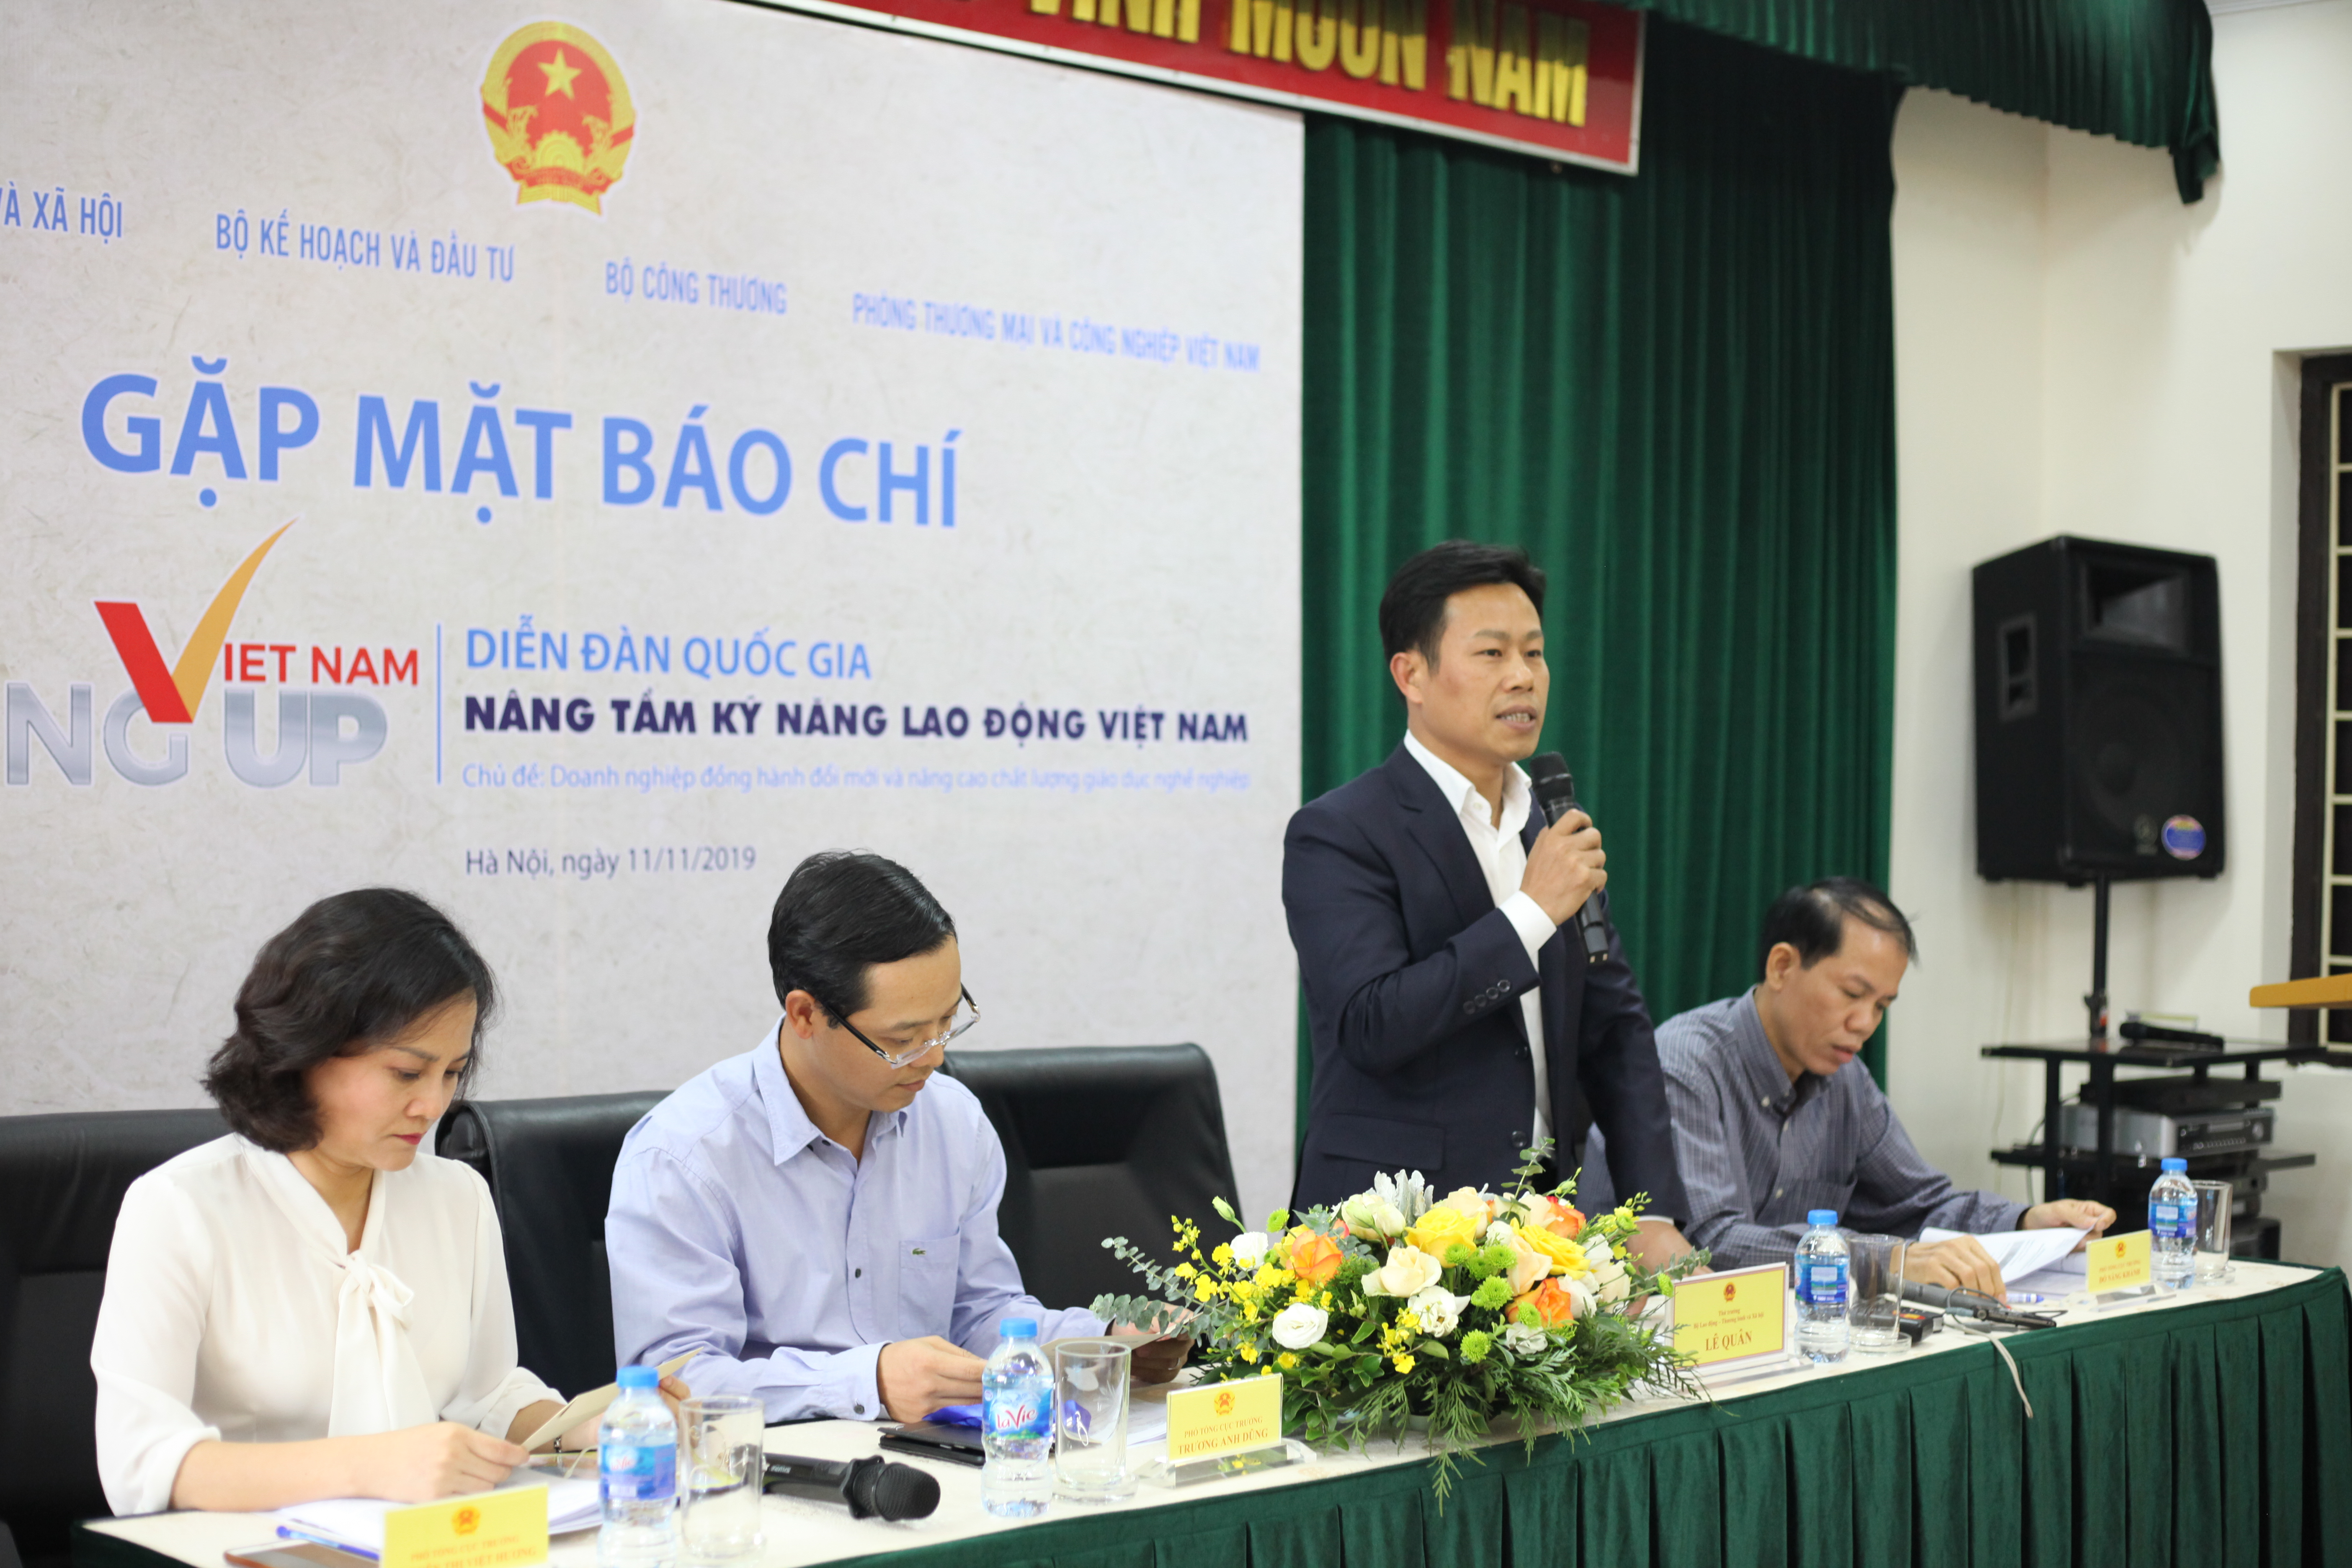 The Prime Minister to chair National forum to discuss improving skills for Vietnamese labourer